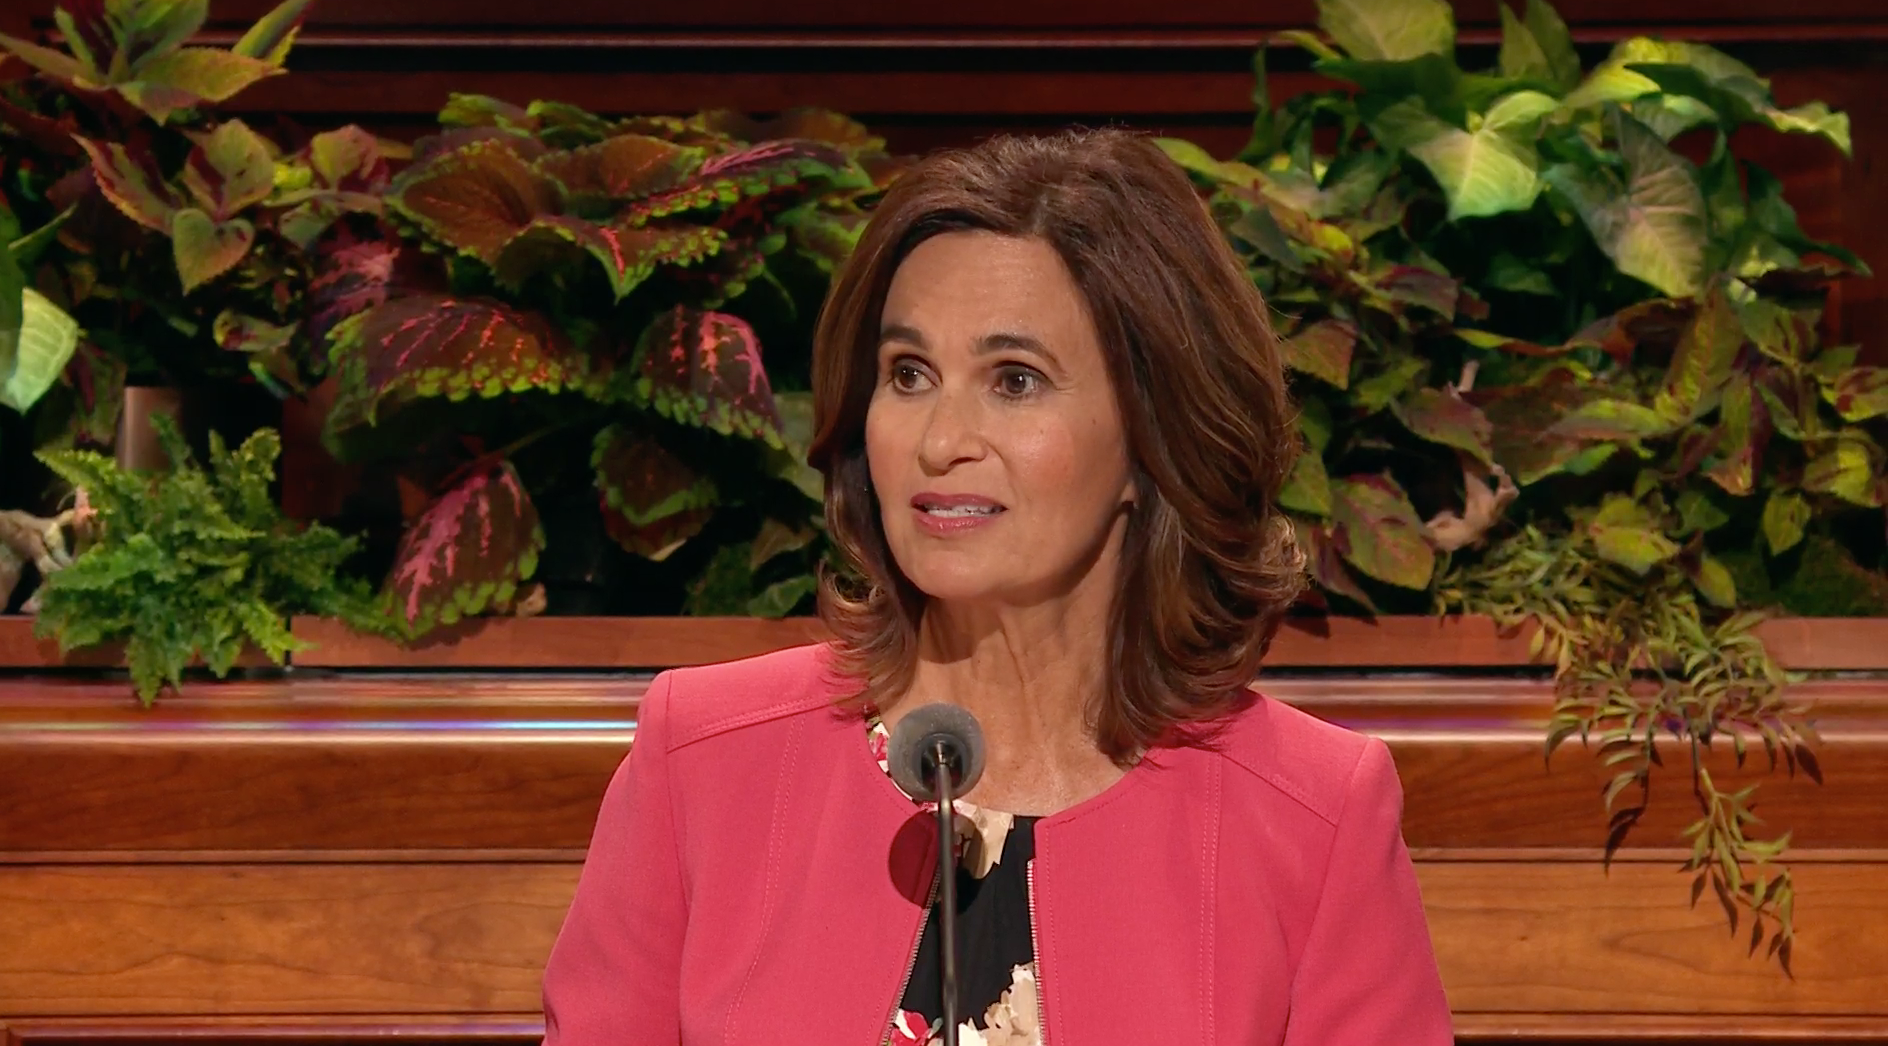 Sister Lisa Harkness, first counselor in the Primary general presidency, speaks during the general women's session in the 189th Semiannual General Conference of the Church on Oct. 5, 2019.